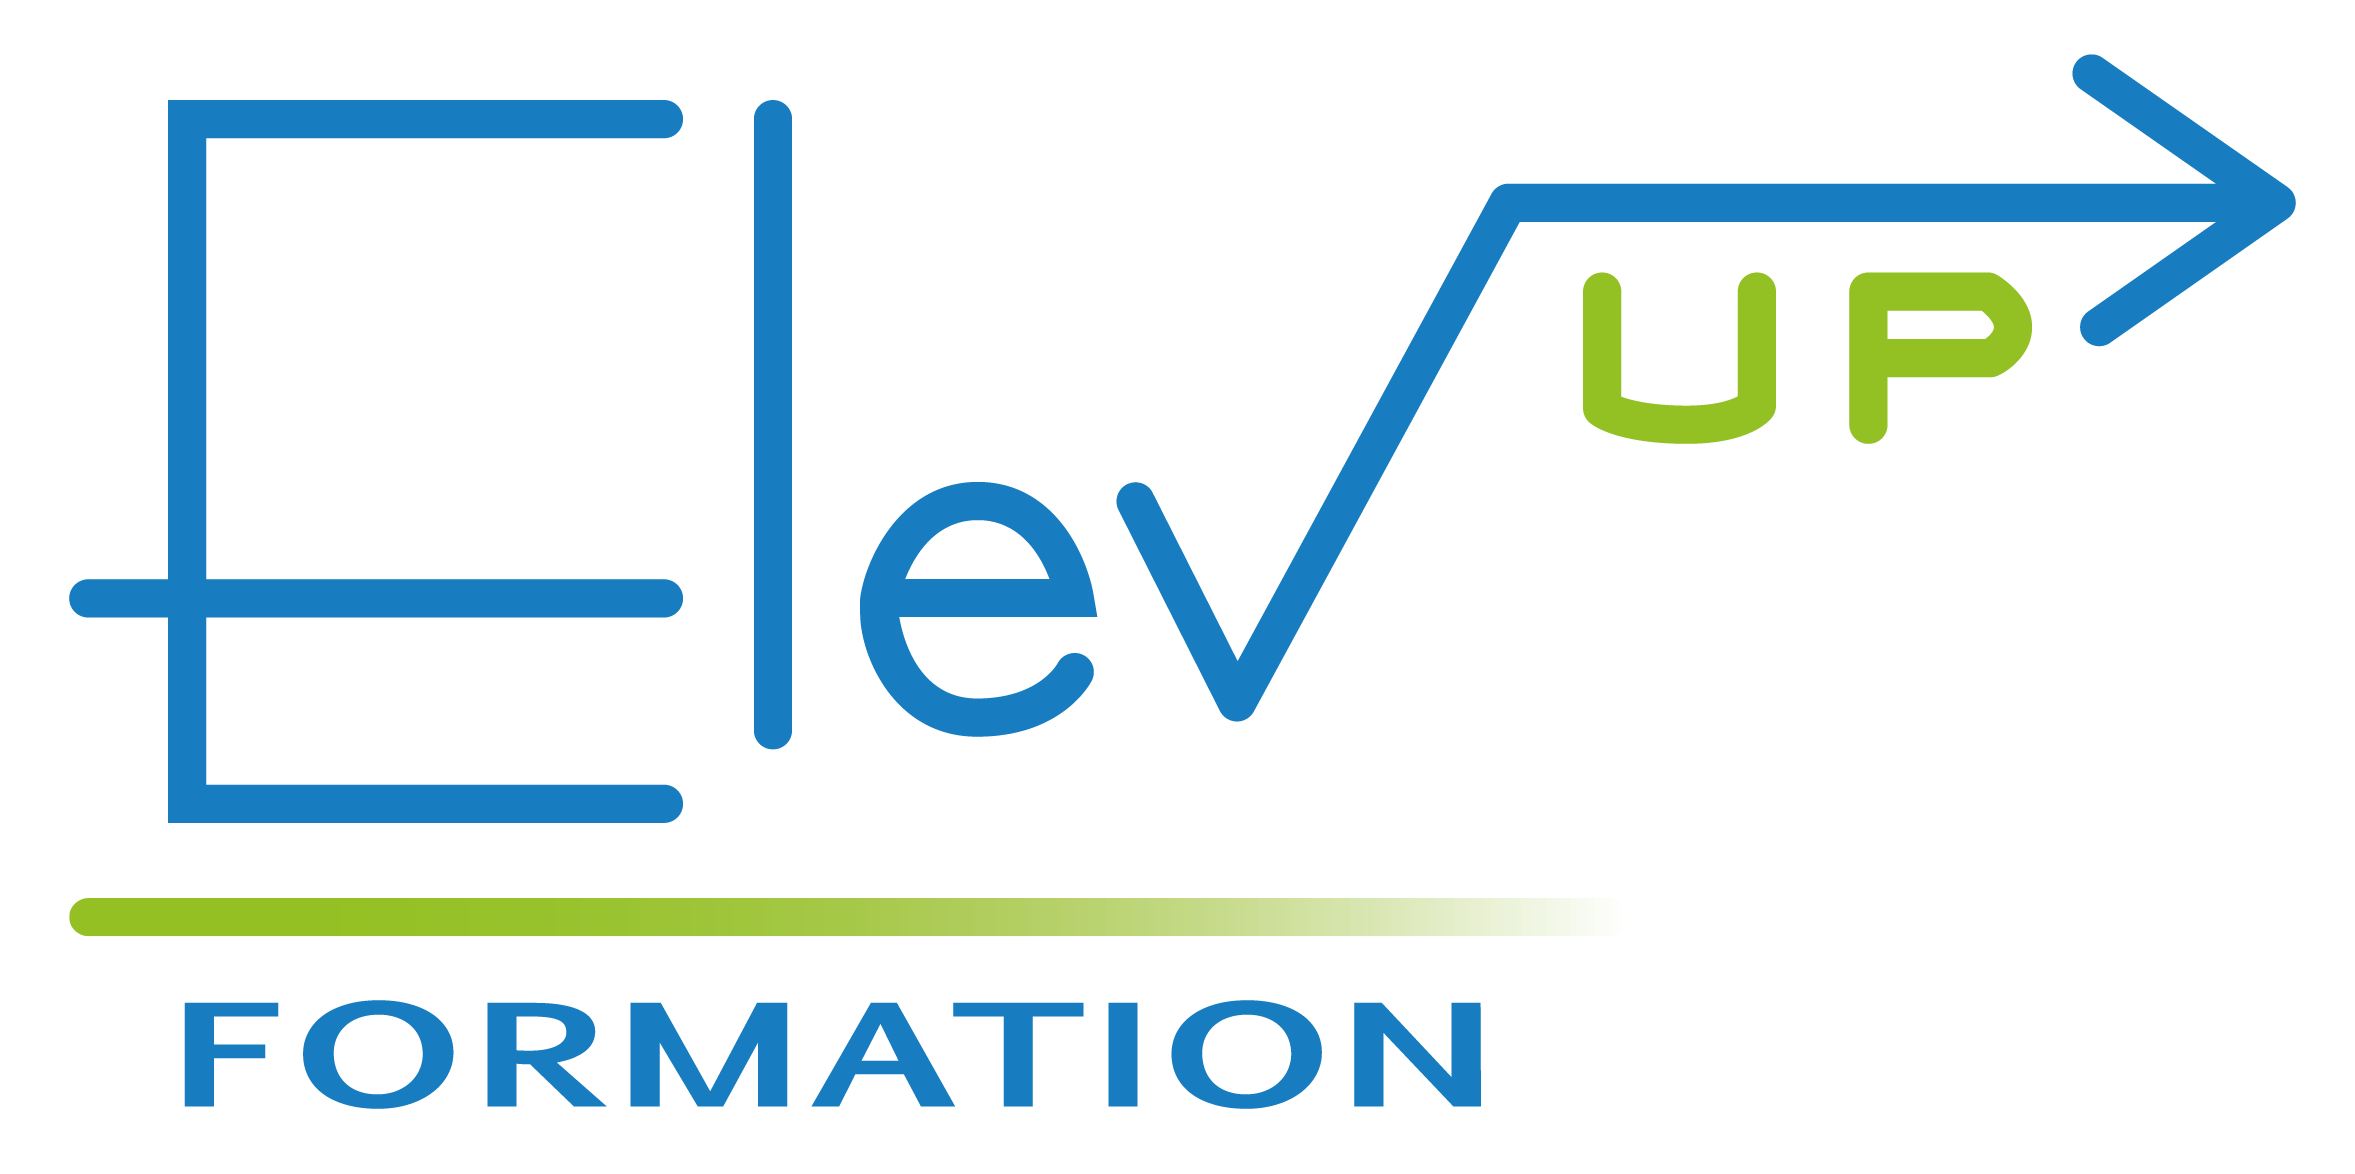 Elevup Formation